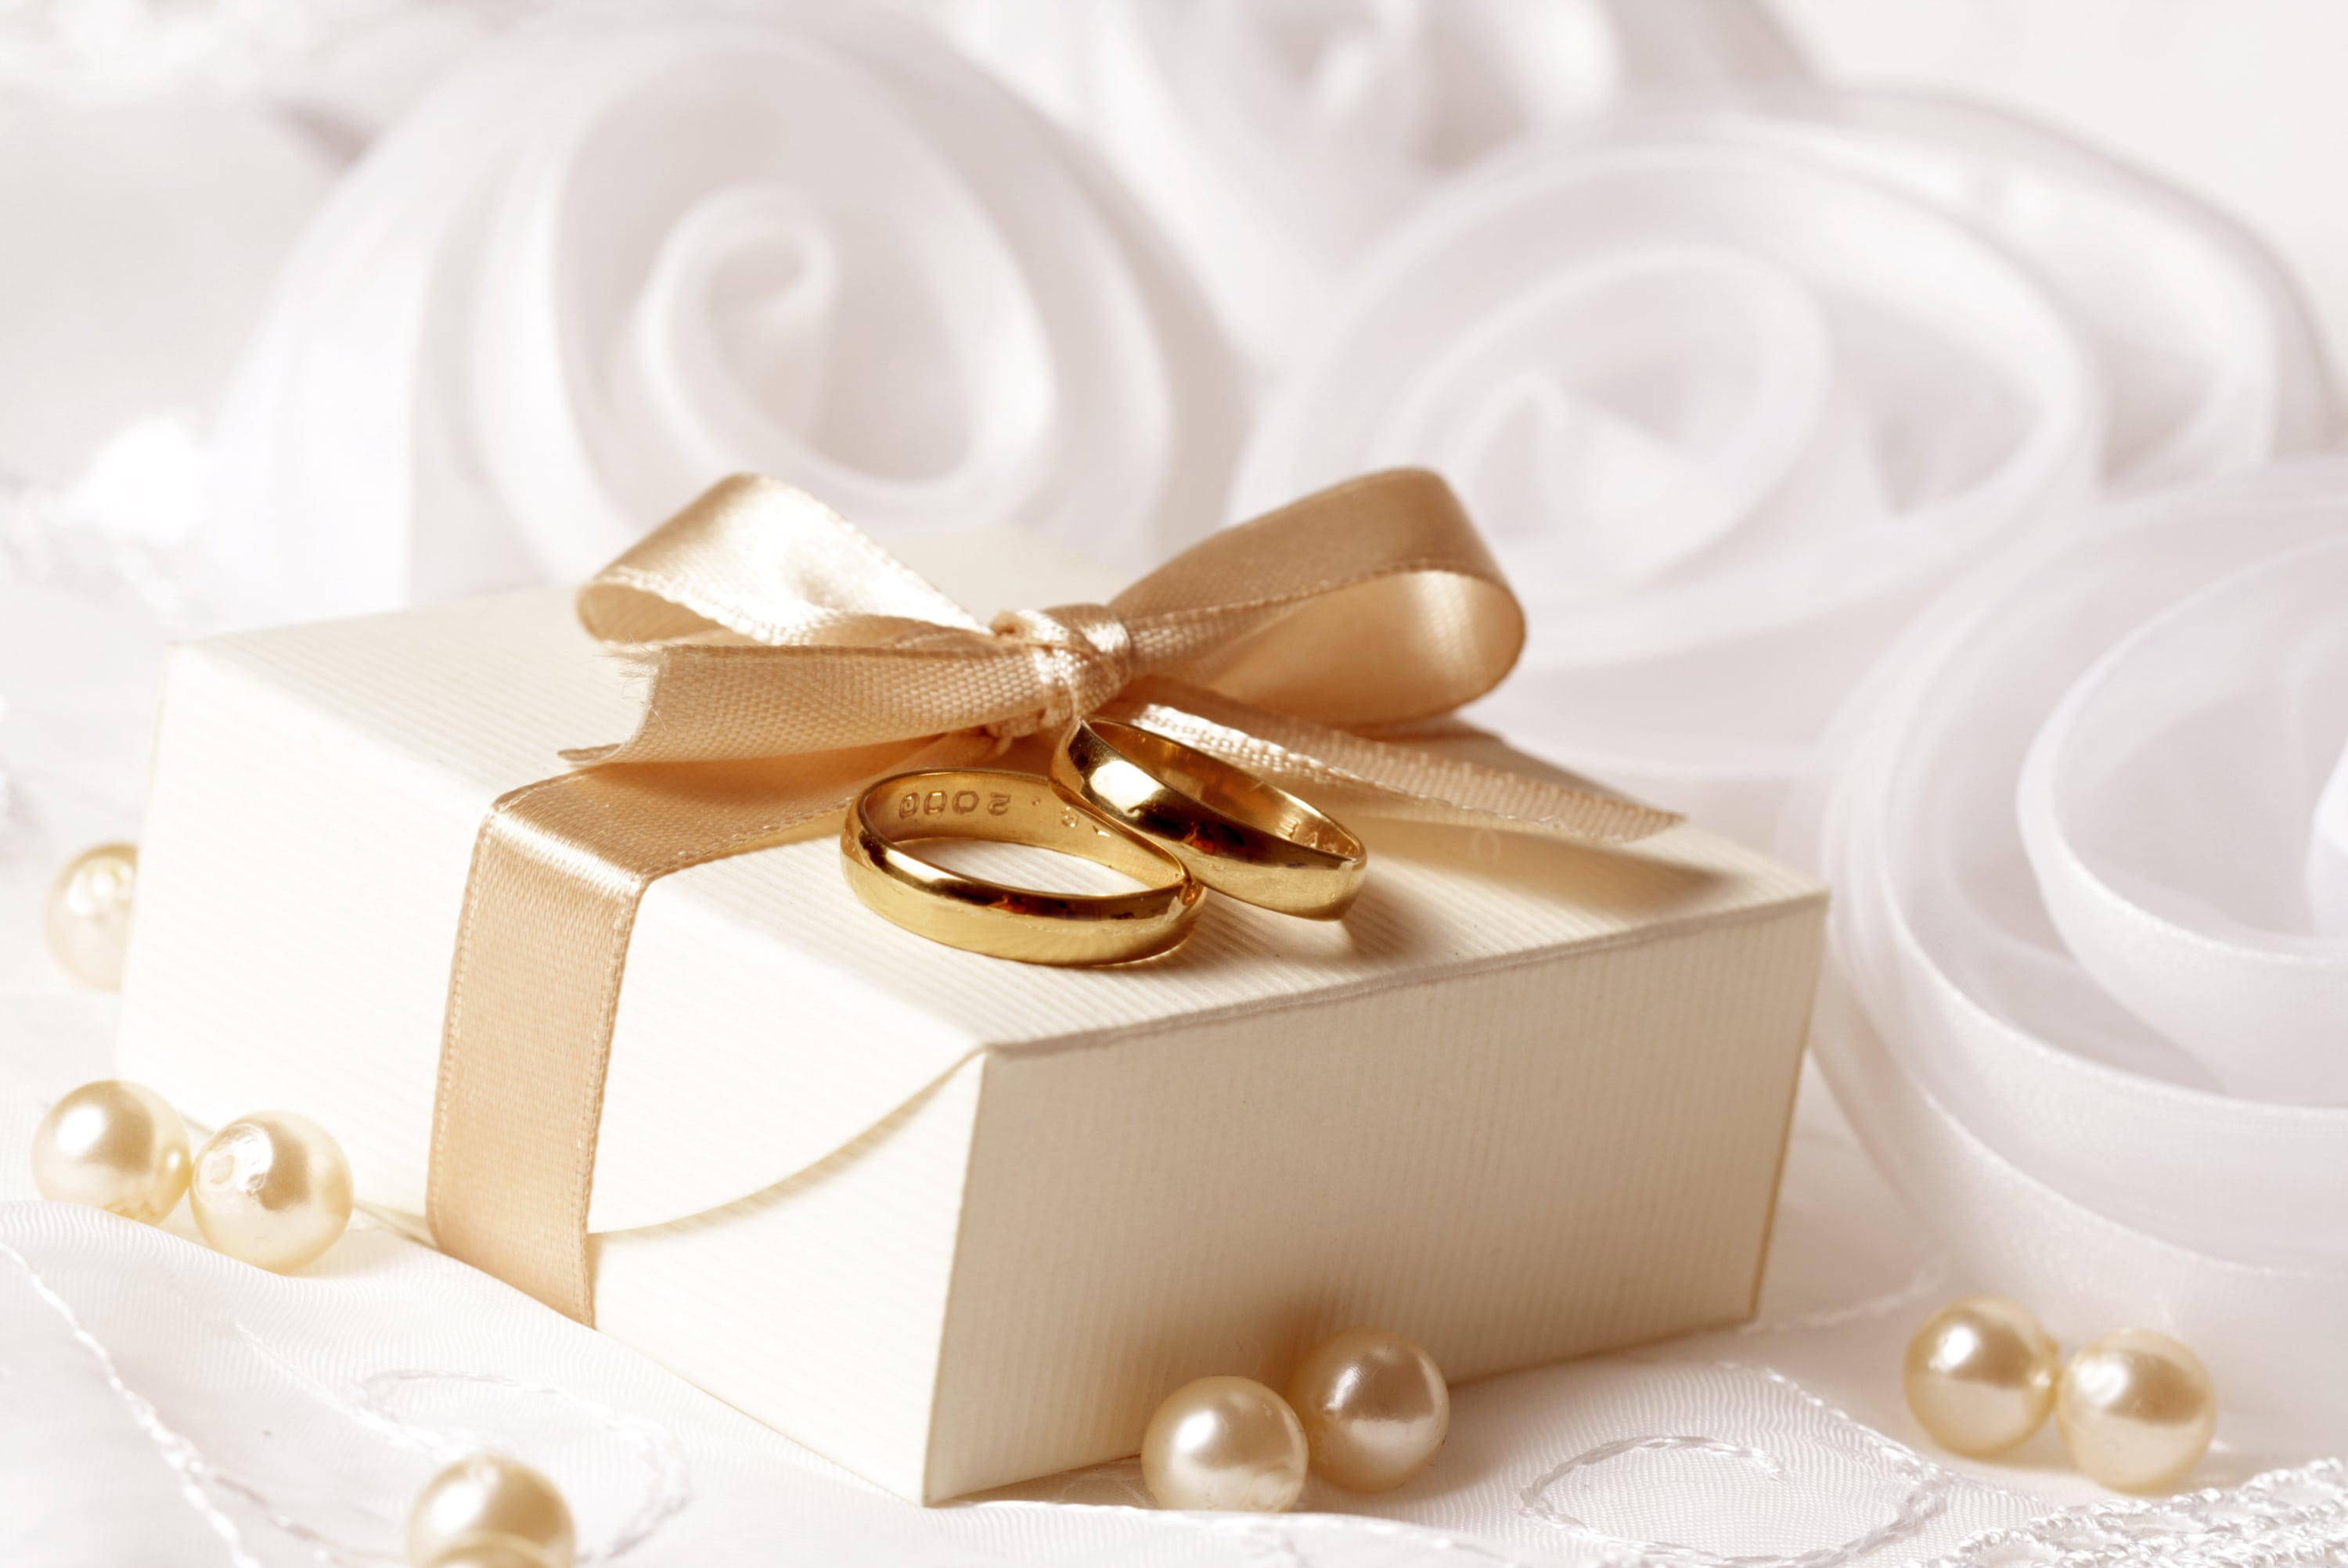 How to make original gifts from money for a wedding